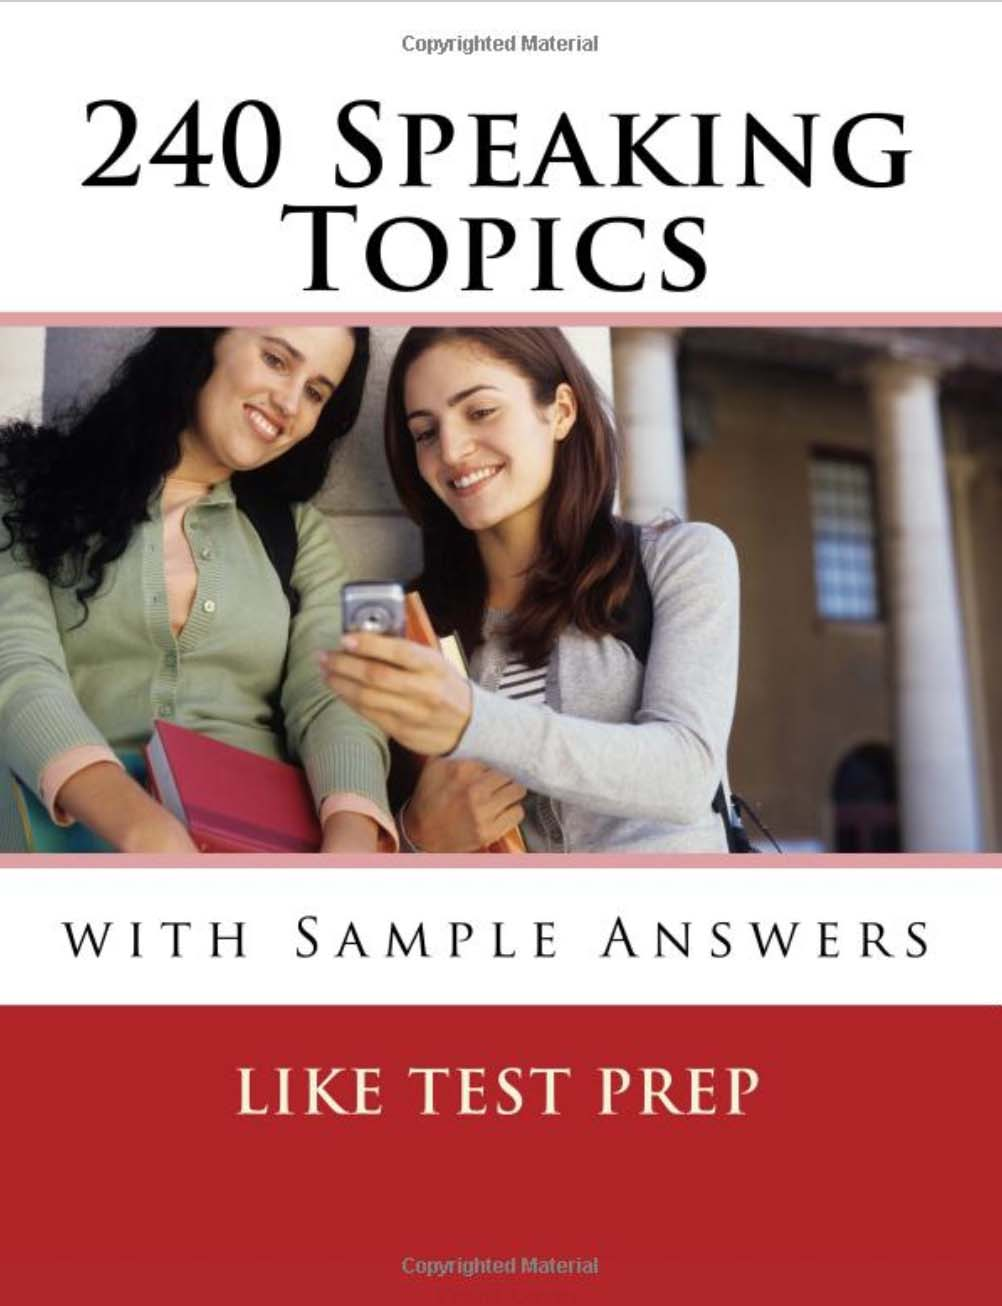 240 Speaking Topics- with Sample Answers